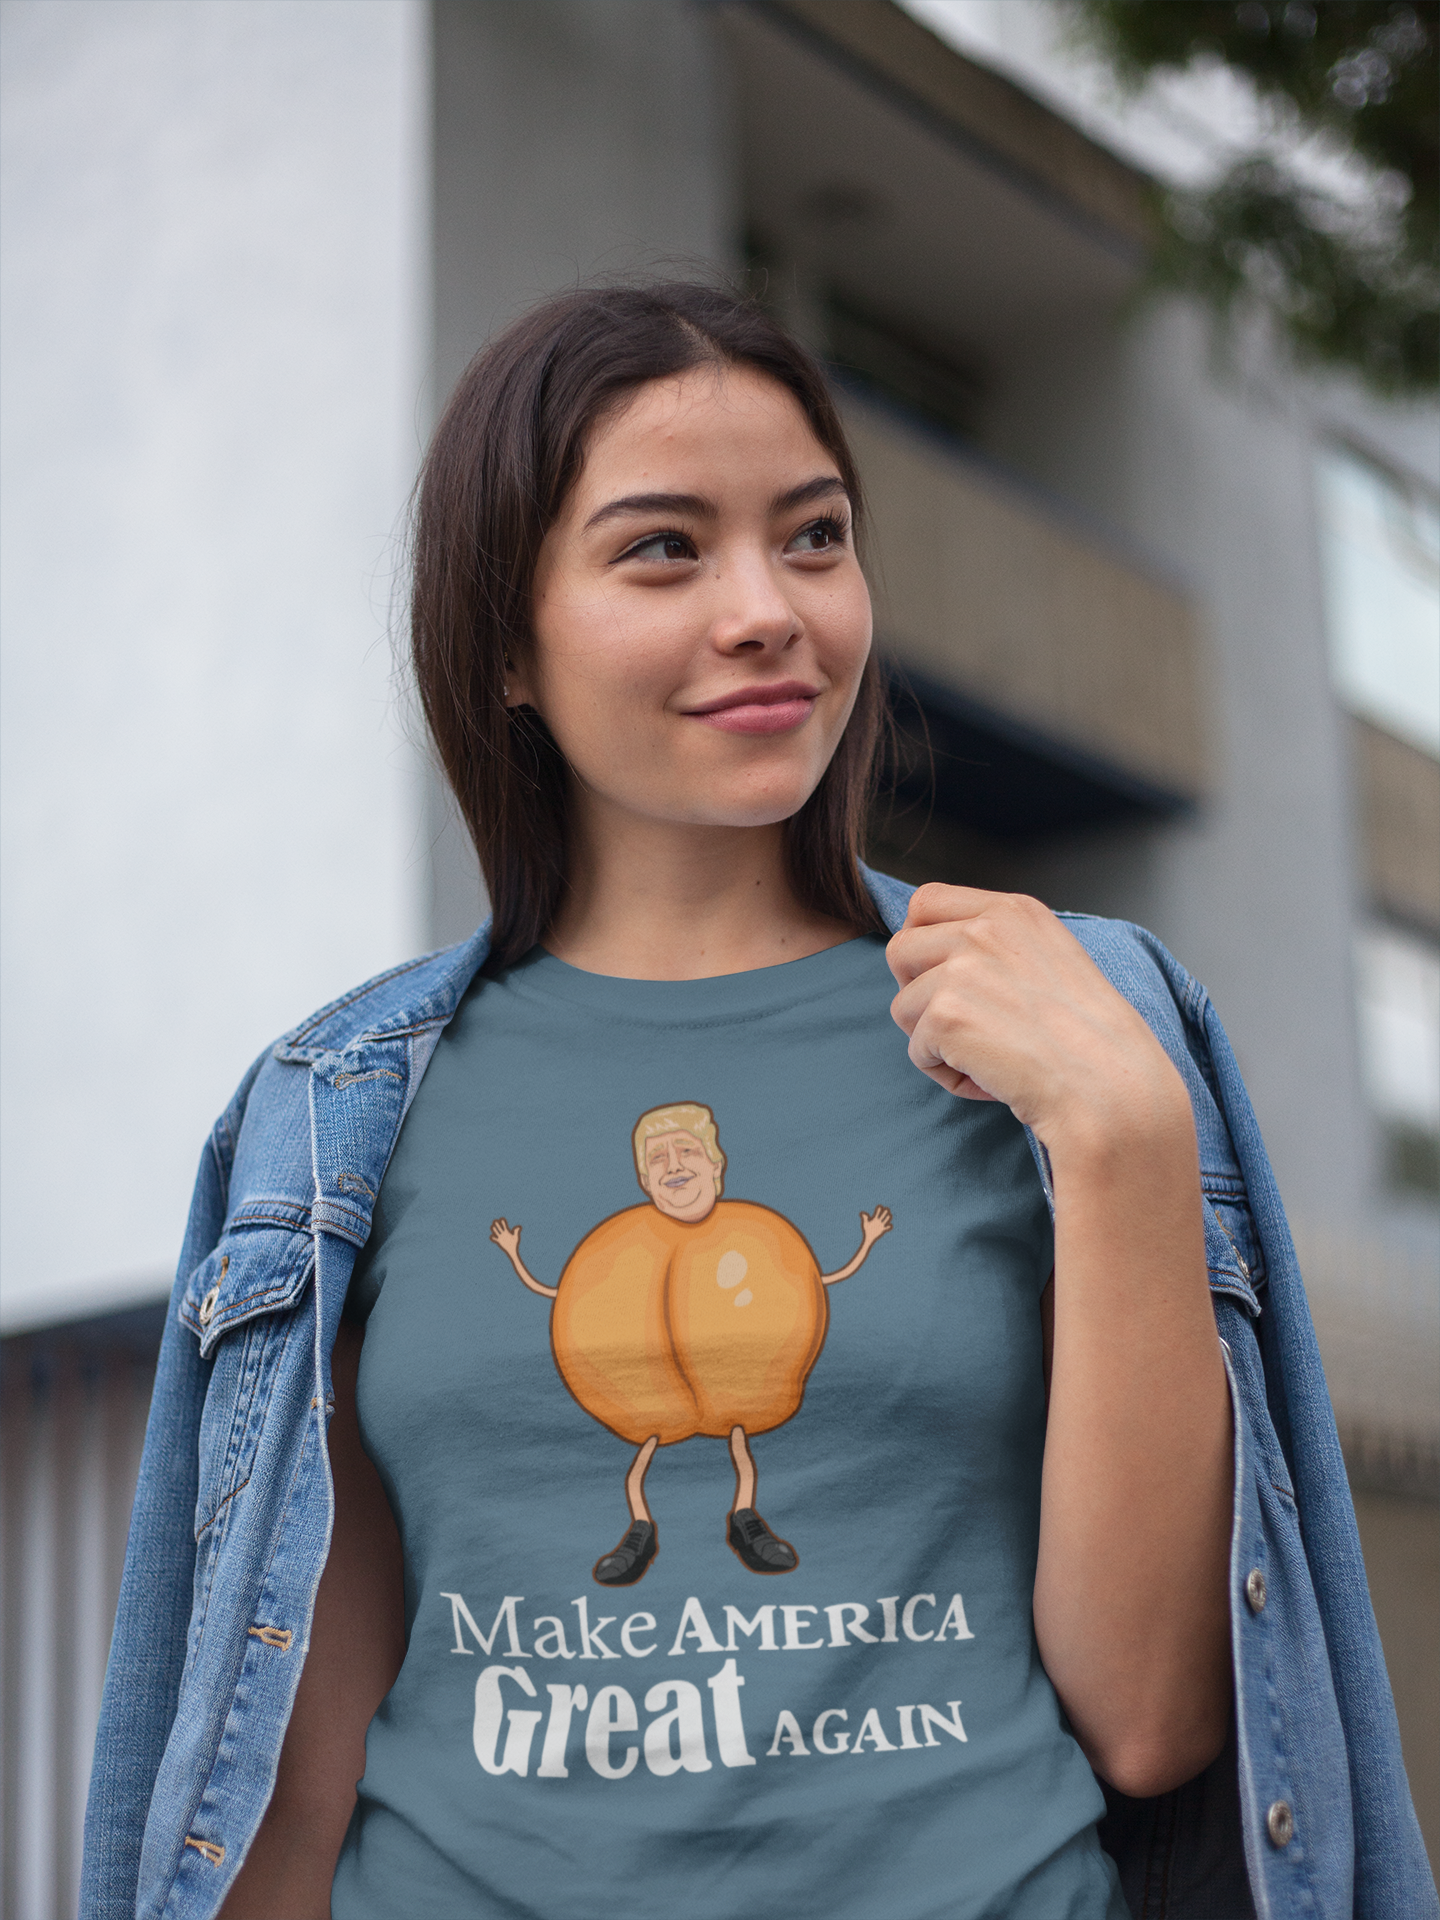 Make America Great Again T-Shirt